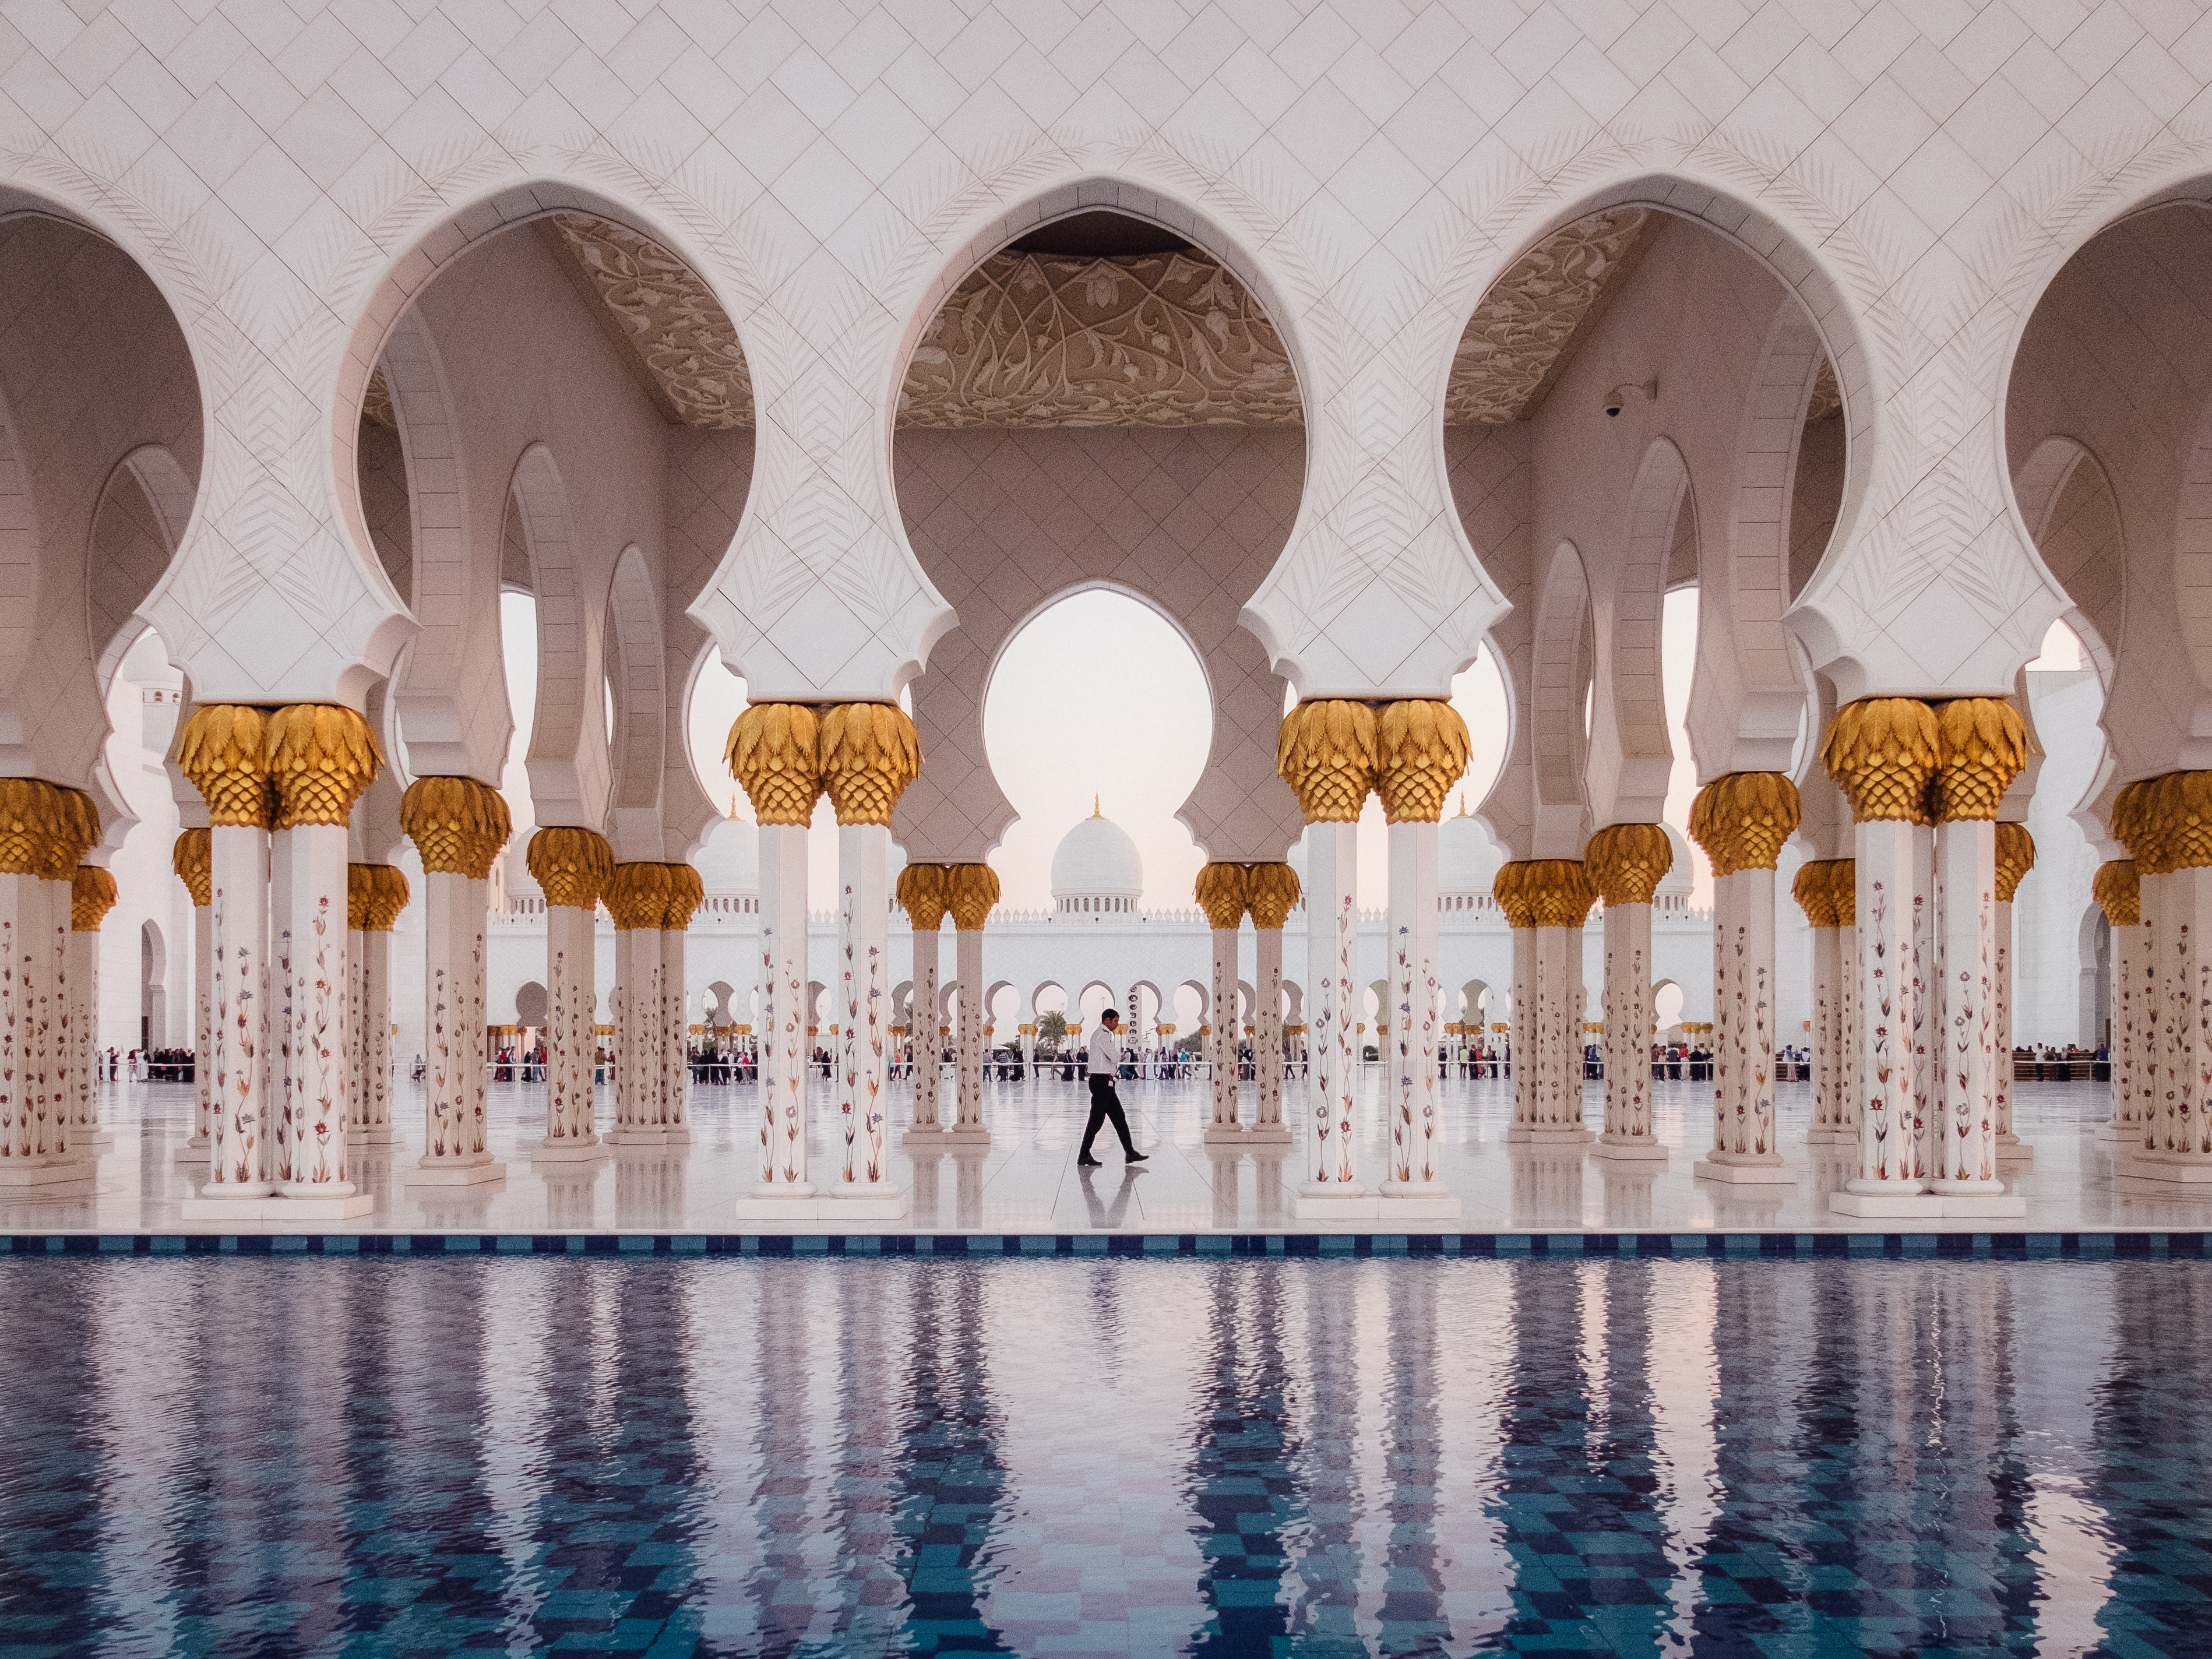 Sheikh Zayed Grand Mosque. UAE offers the highest salaries for teaching english abroad.